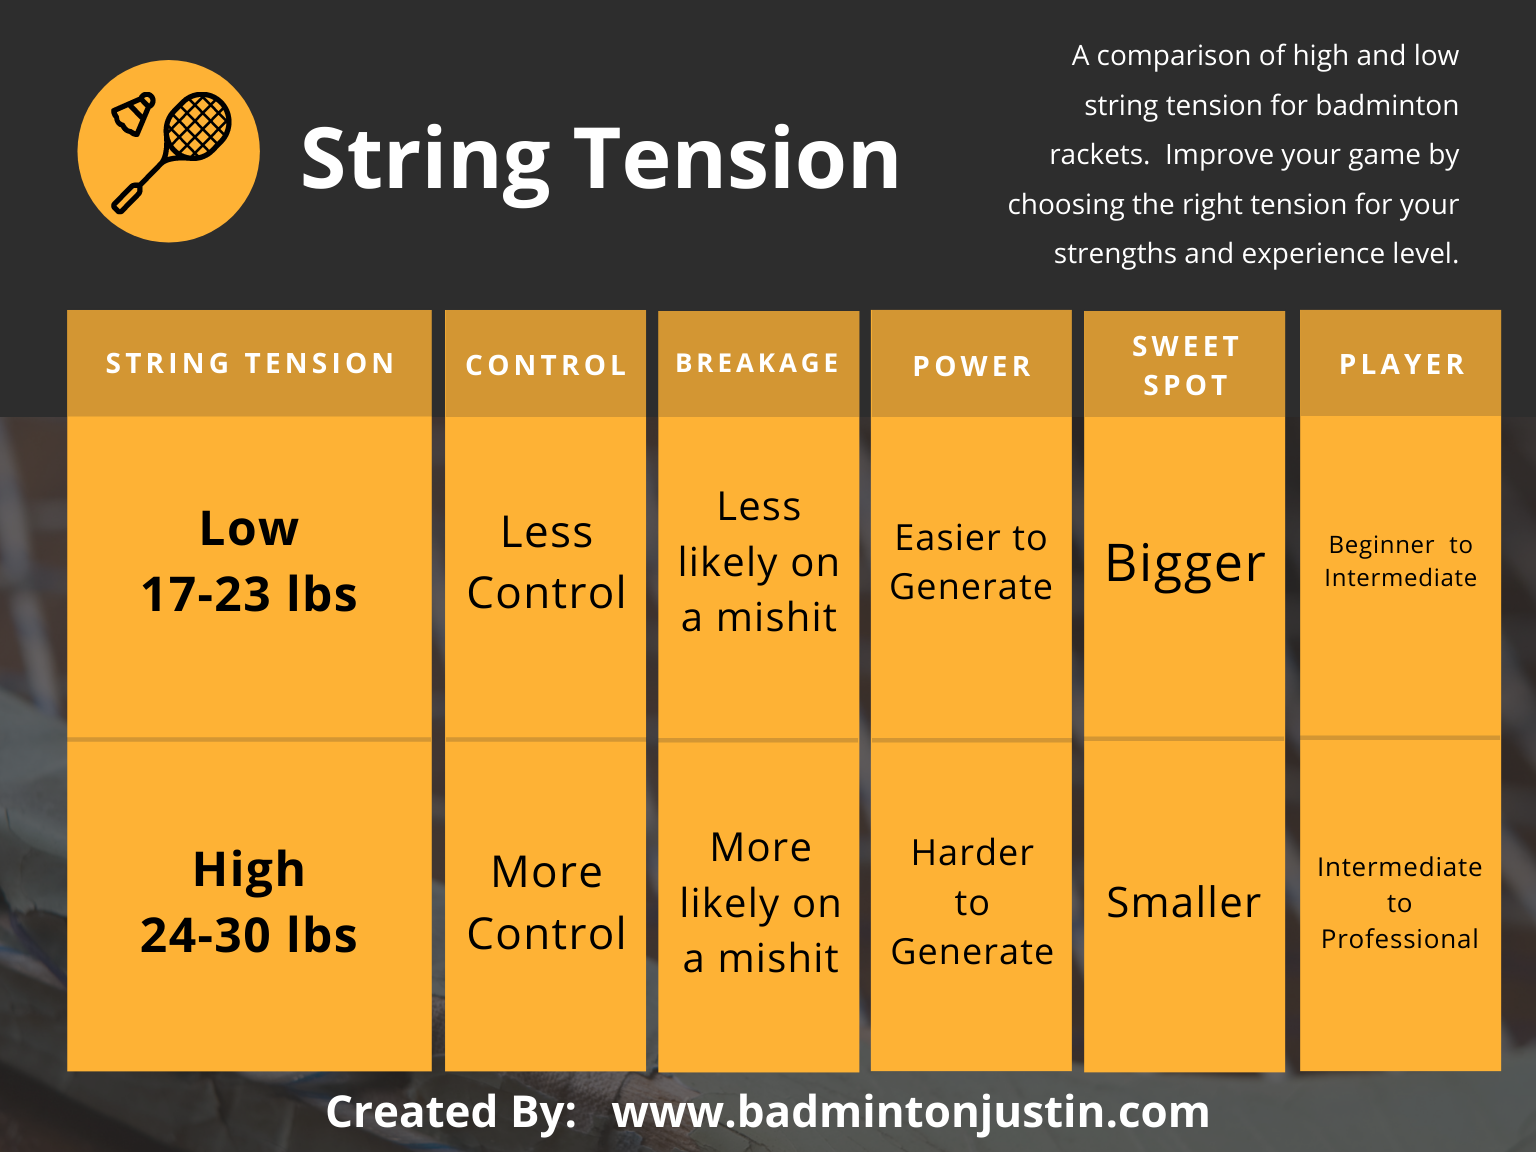 A chart comparing pros and cons of low string tension and high string tension.  Low tension is between 17 and 23 pounds.  Low tension offers less control.  Strings are less likely to break on a mishit.  It is easier to generate power.  You have a bigger sweet spot.  Low tension is recommended for beginner to intermediate players.  High tension is between 24 and 30 pounds.  High tension offers more control.  Strings are more likely to break on a mishit.  It is harder to generate power and your sweet spot is smaller.  High string tension is recommended for intermediate to professional players.